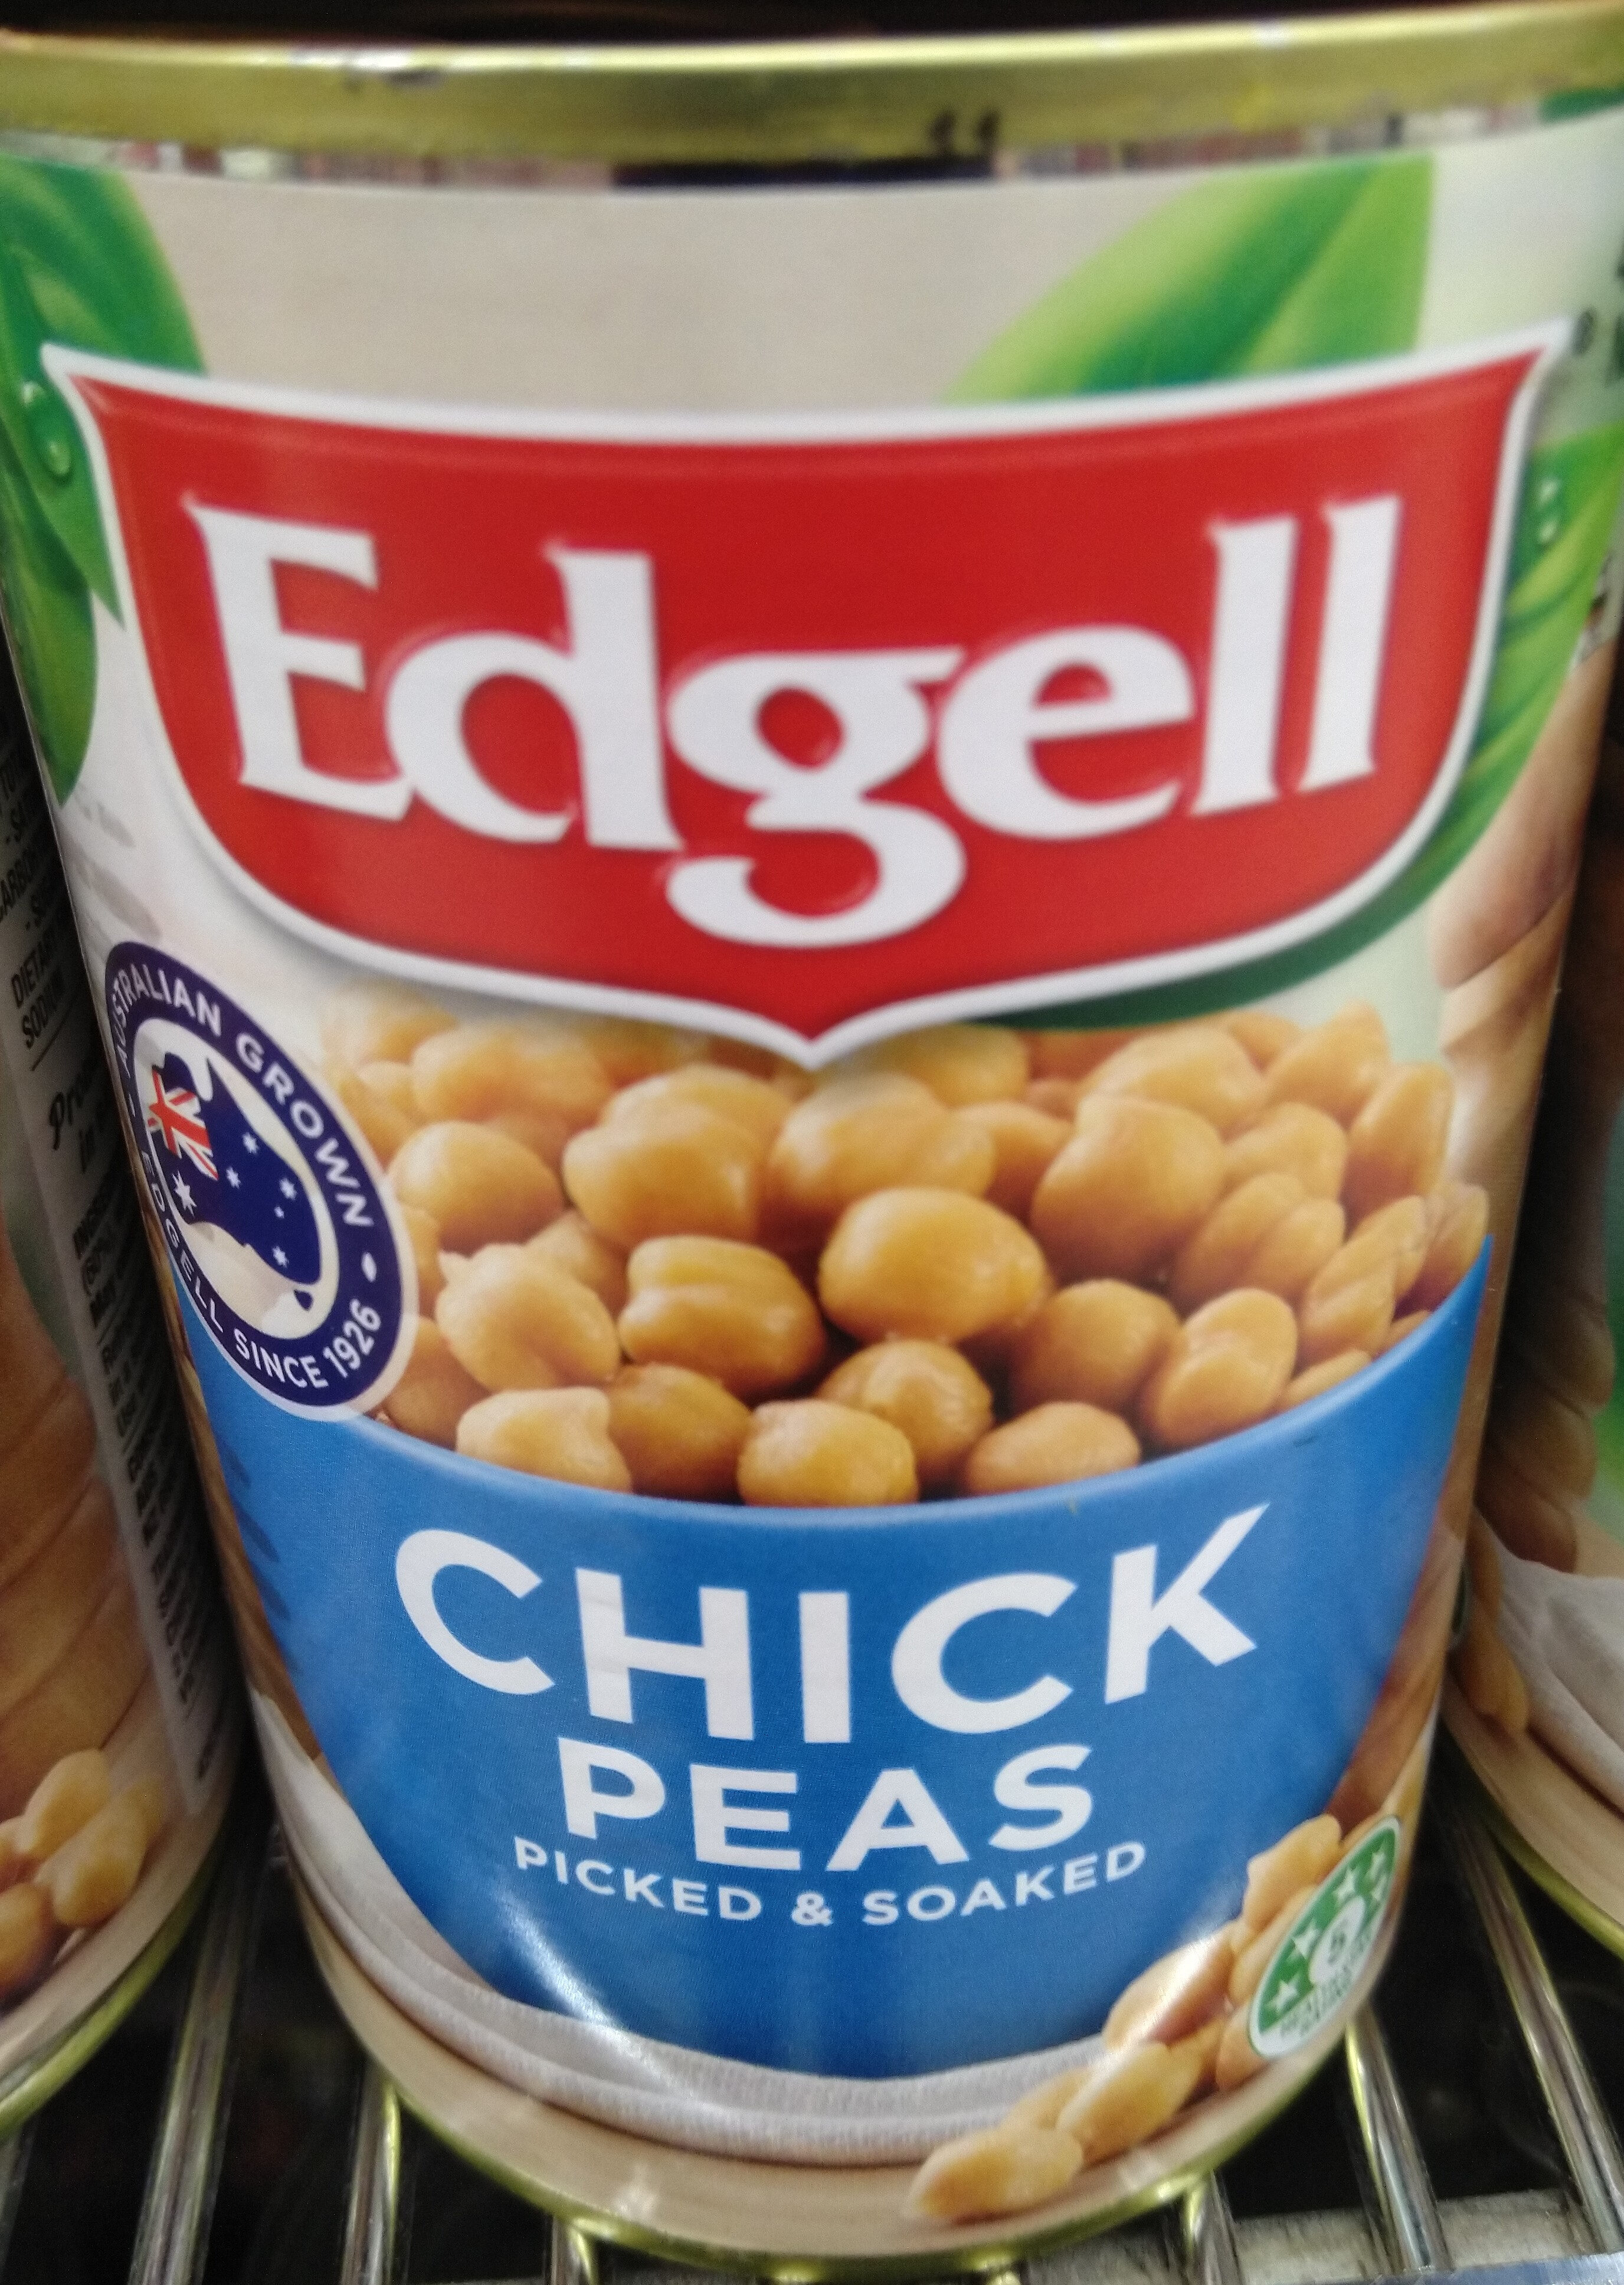 Edgell Chick Peas - Product